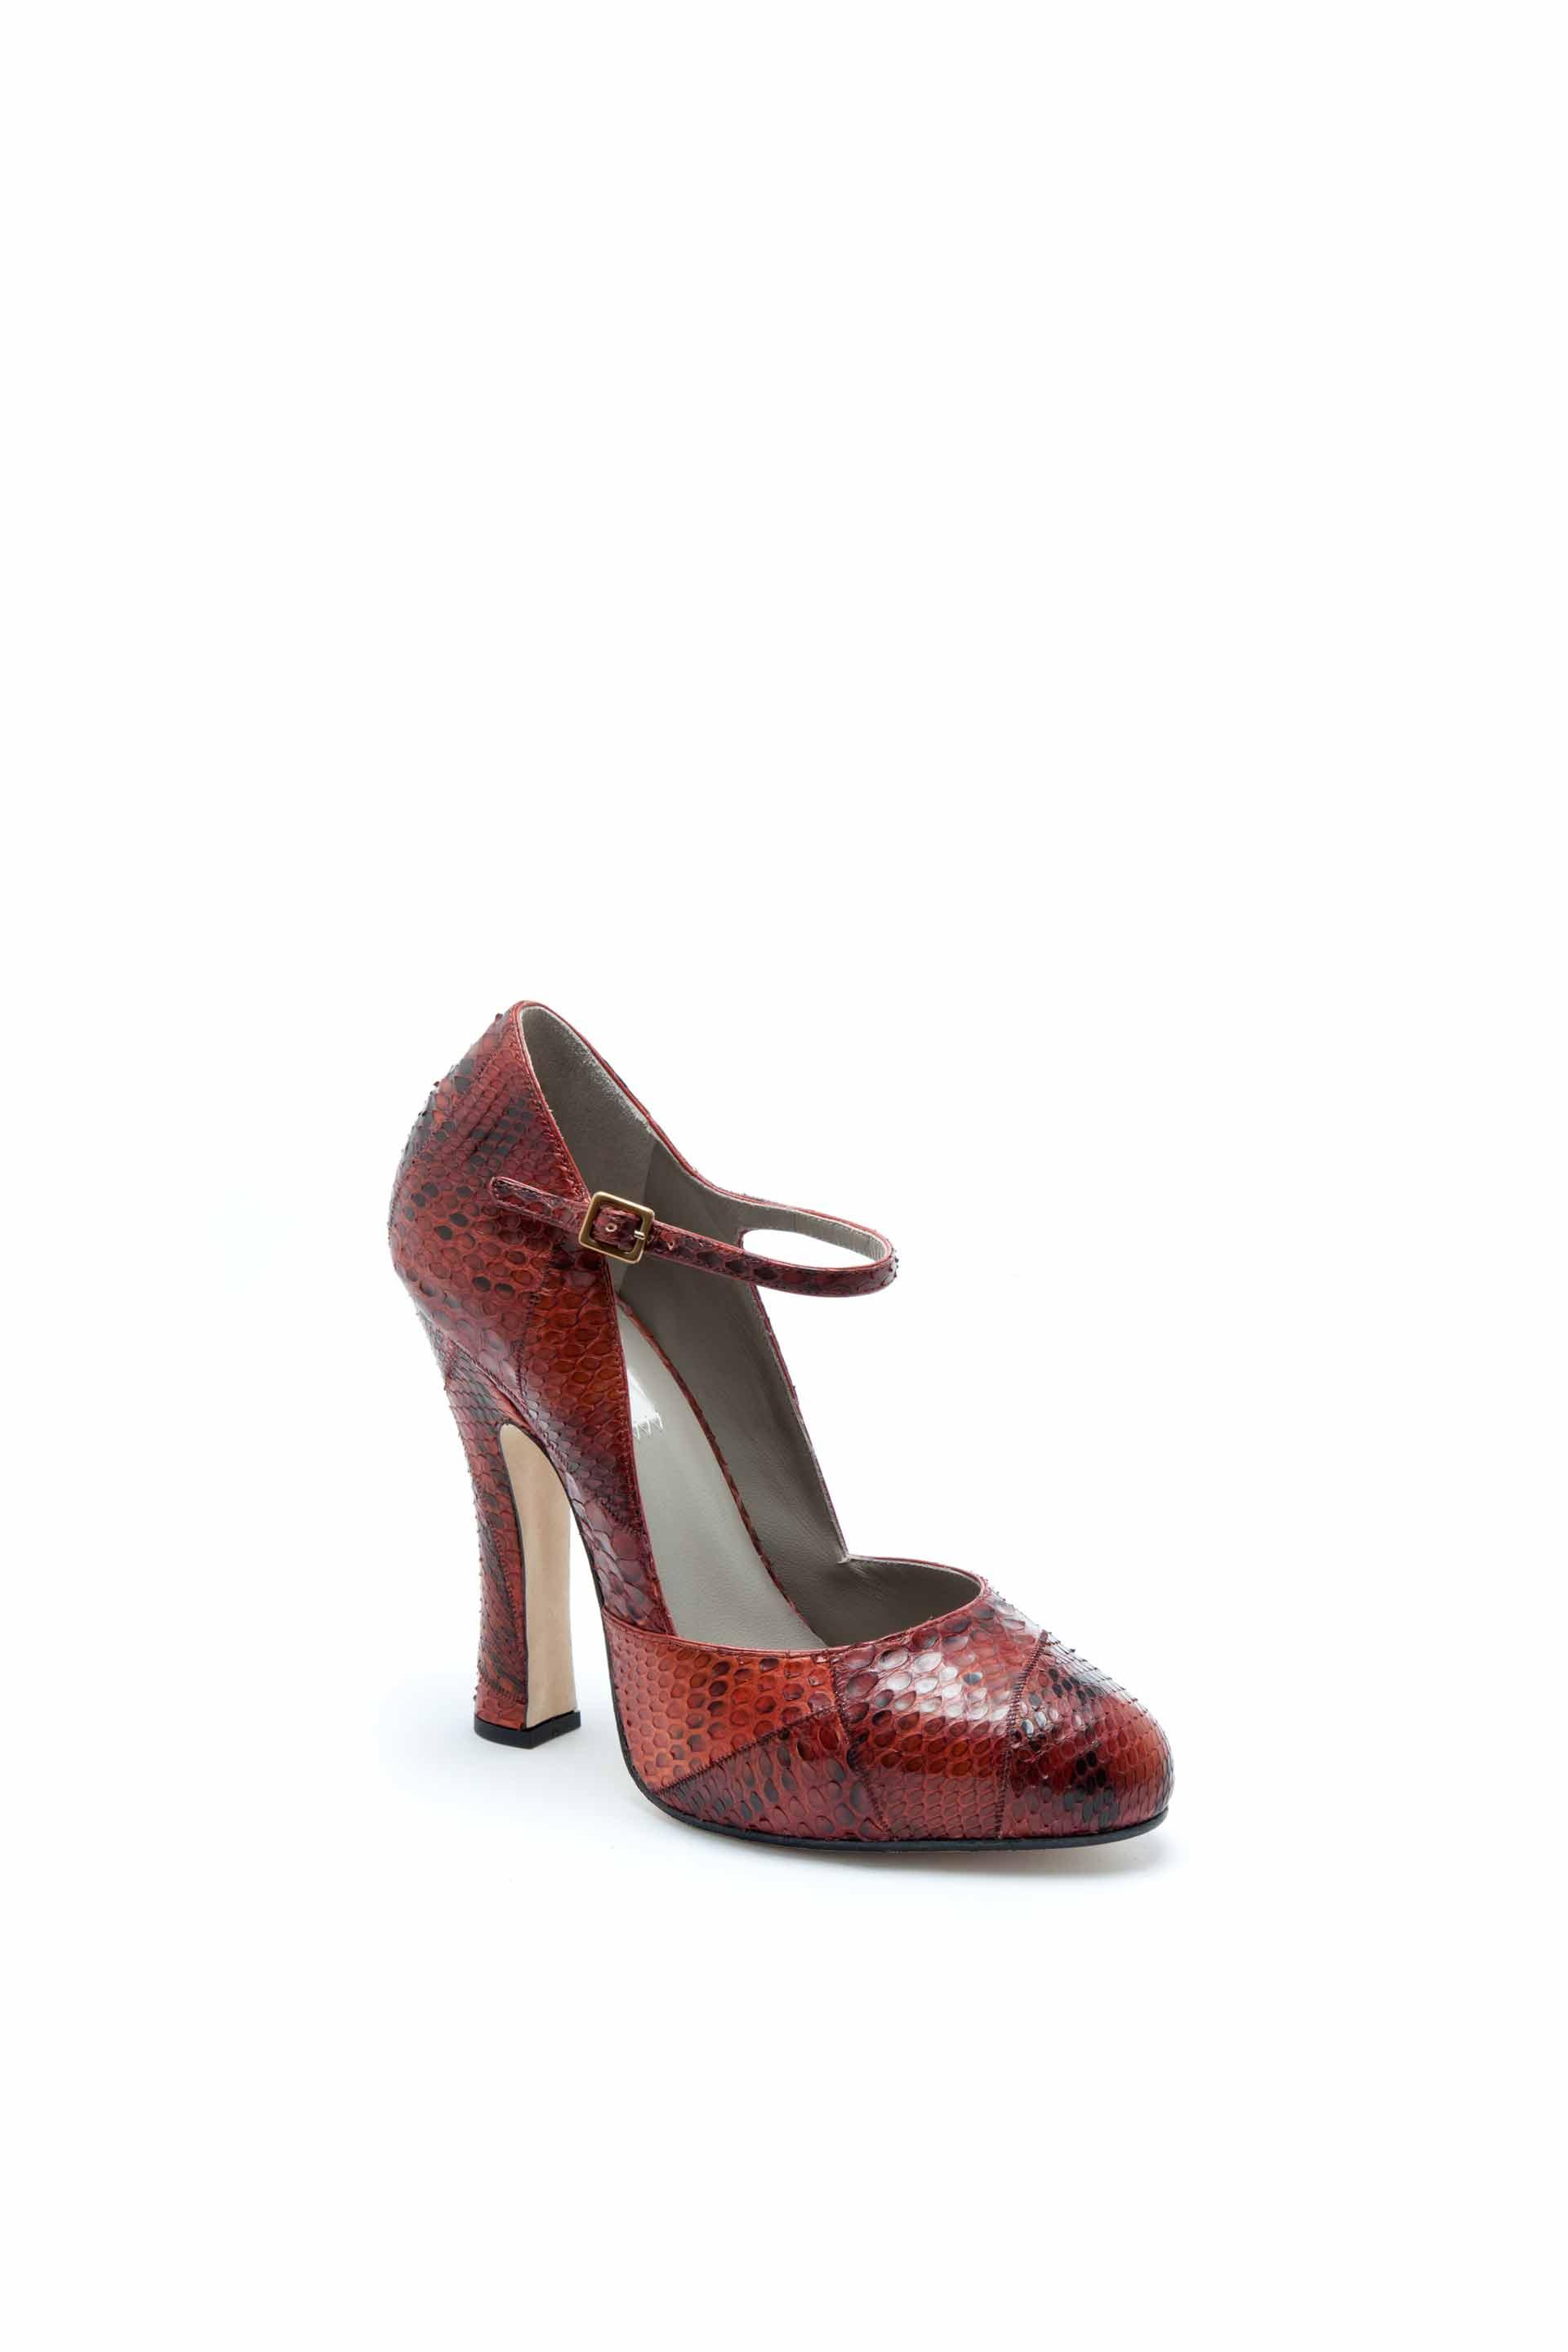 Marc Jacobs Python Mary Jane Pumps clearance online official site sast online purchase 2015 cheap price eJg8gnLHP